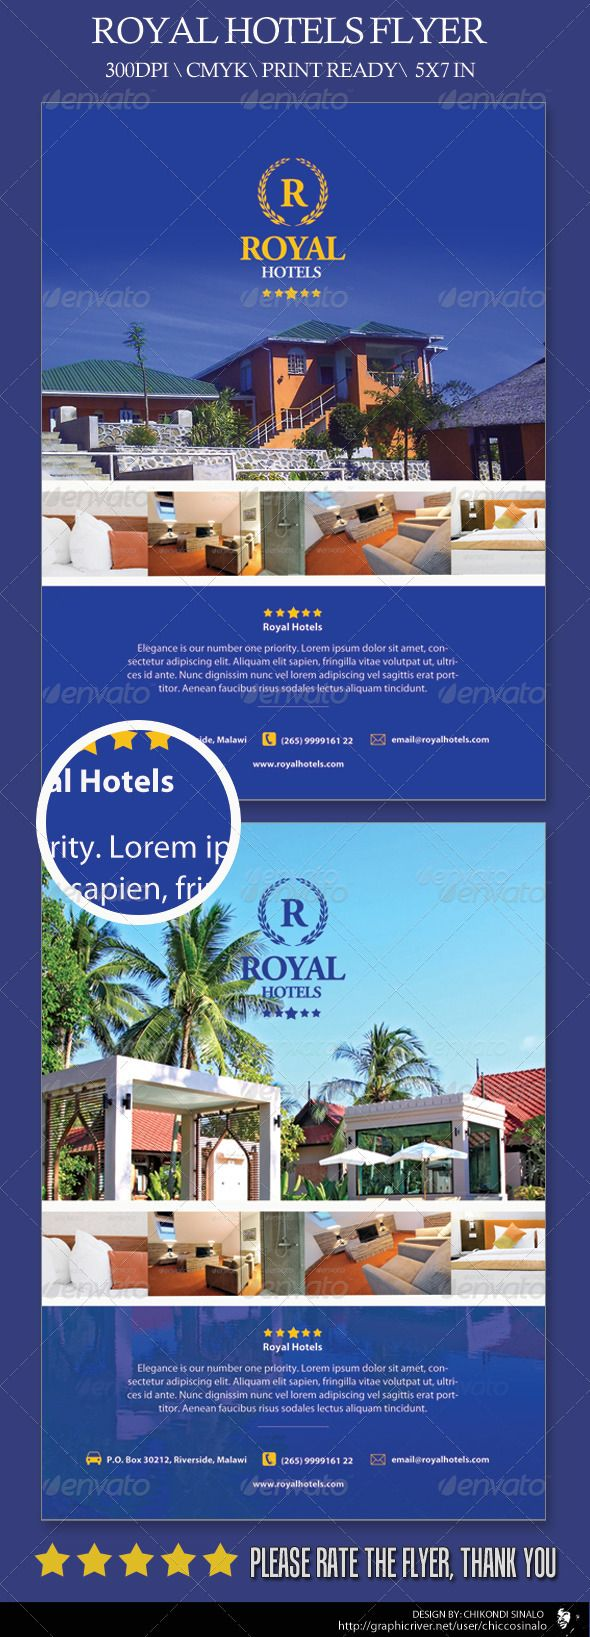 Royal Hotels Flyer Template  Flyer Template Template And Print